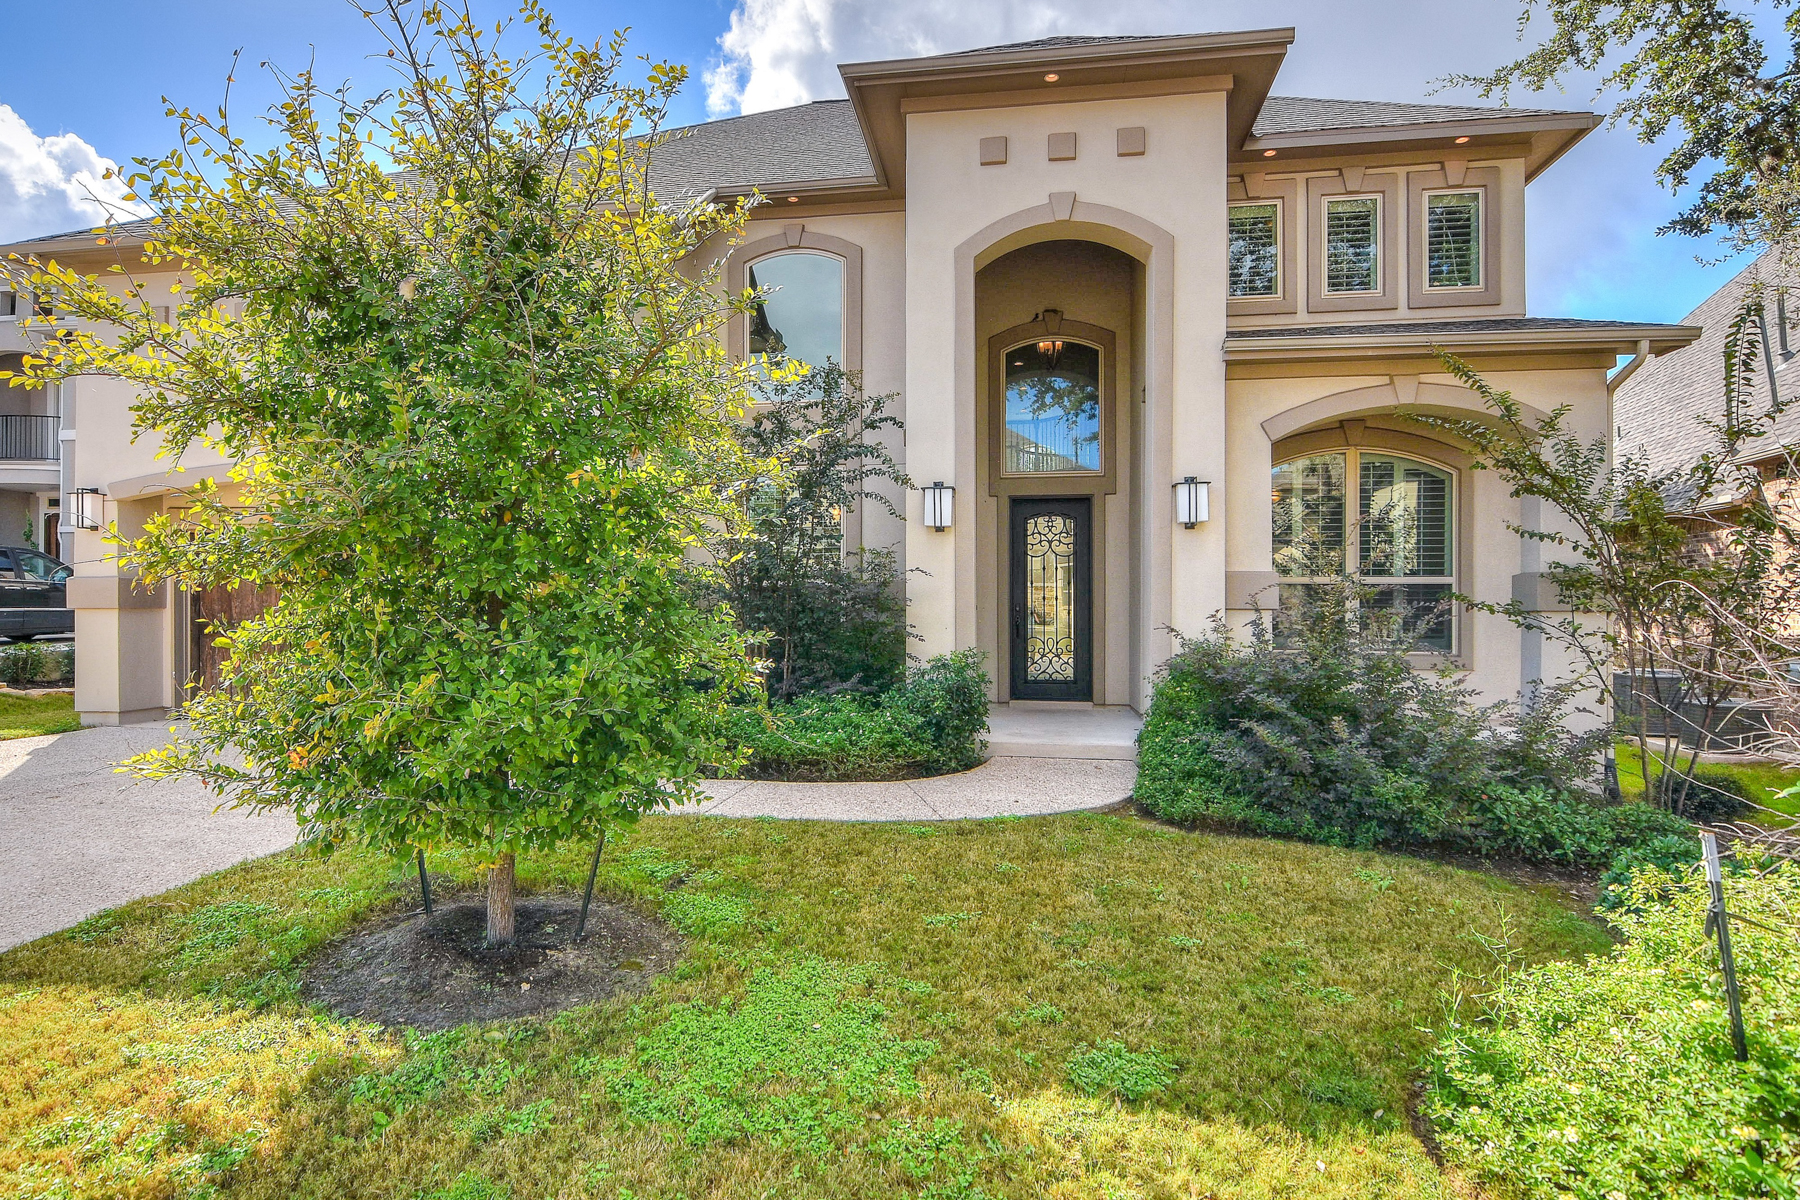 Single Family Home for Sale at Mediterranean Beauty in Estates of Alon 2314 Dunmore Hill San Antonio, Texas 78230 United States